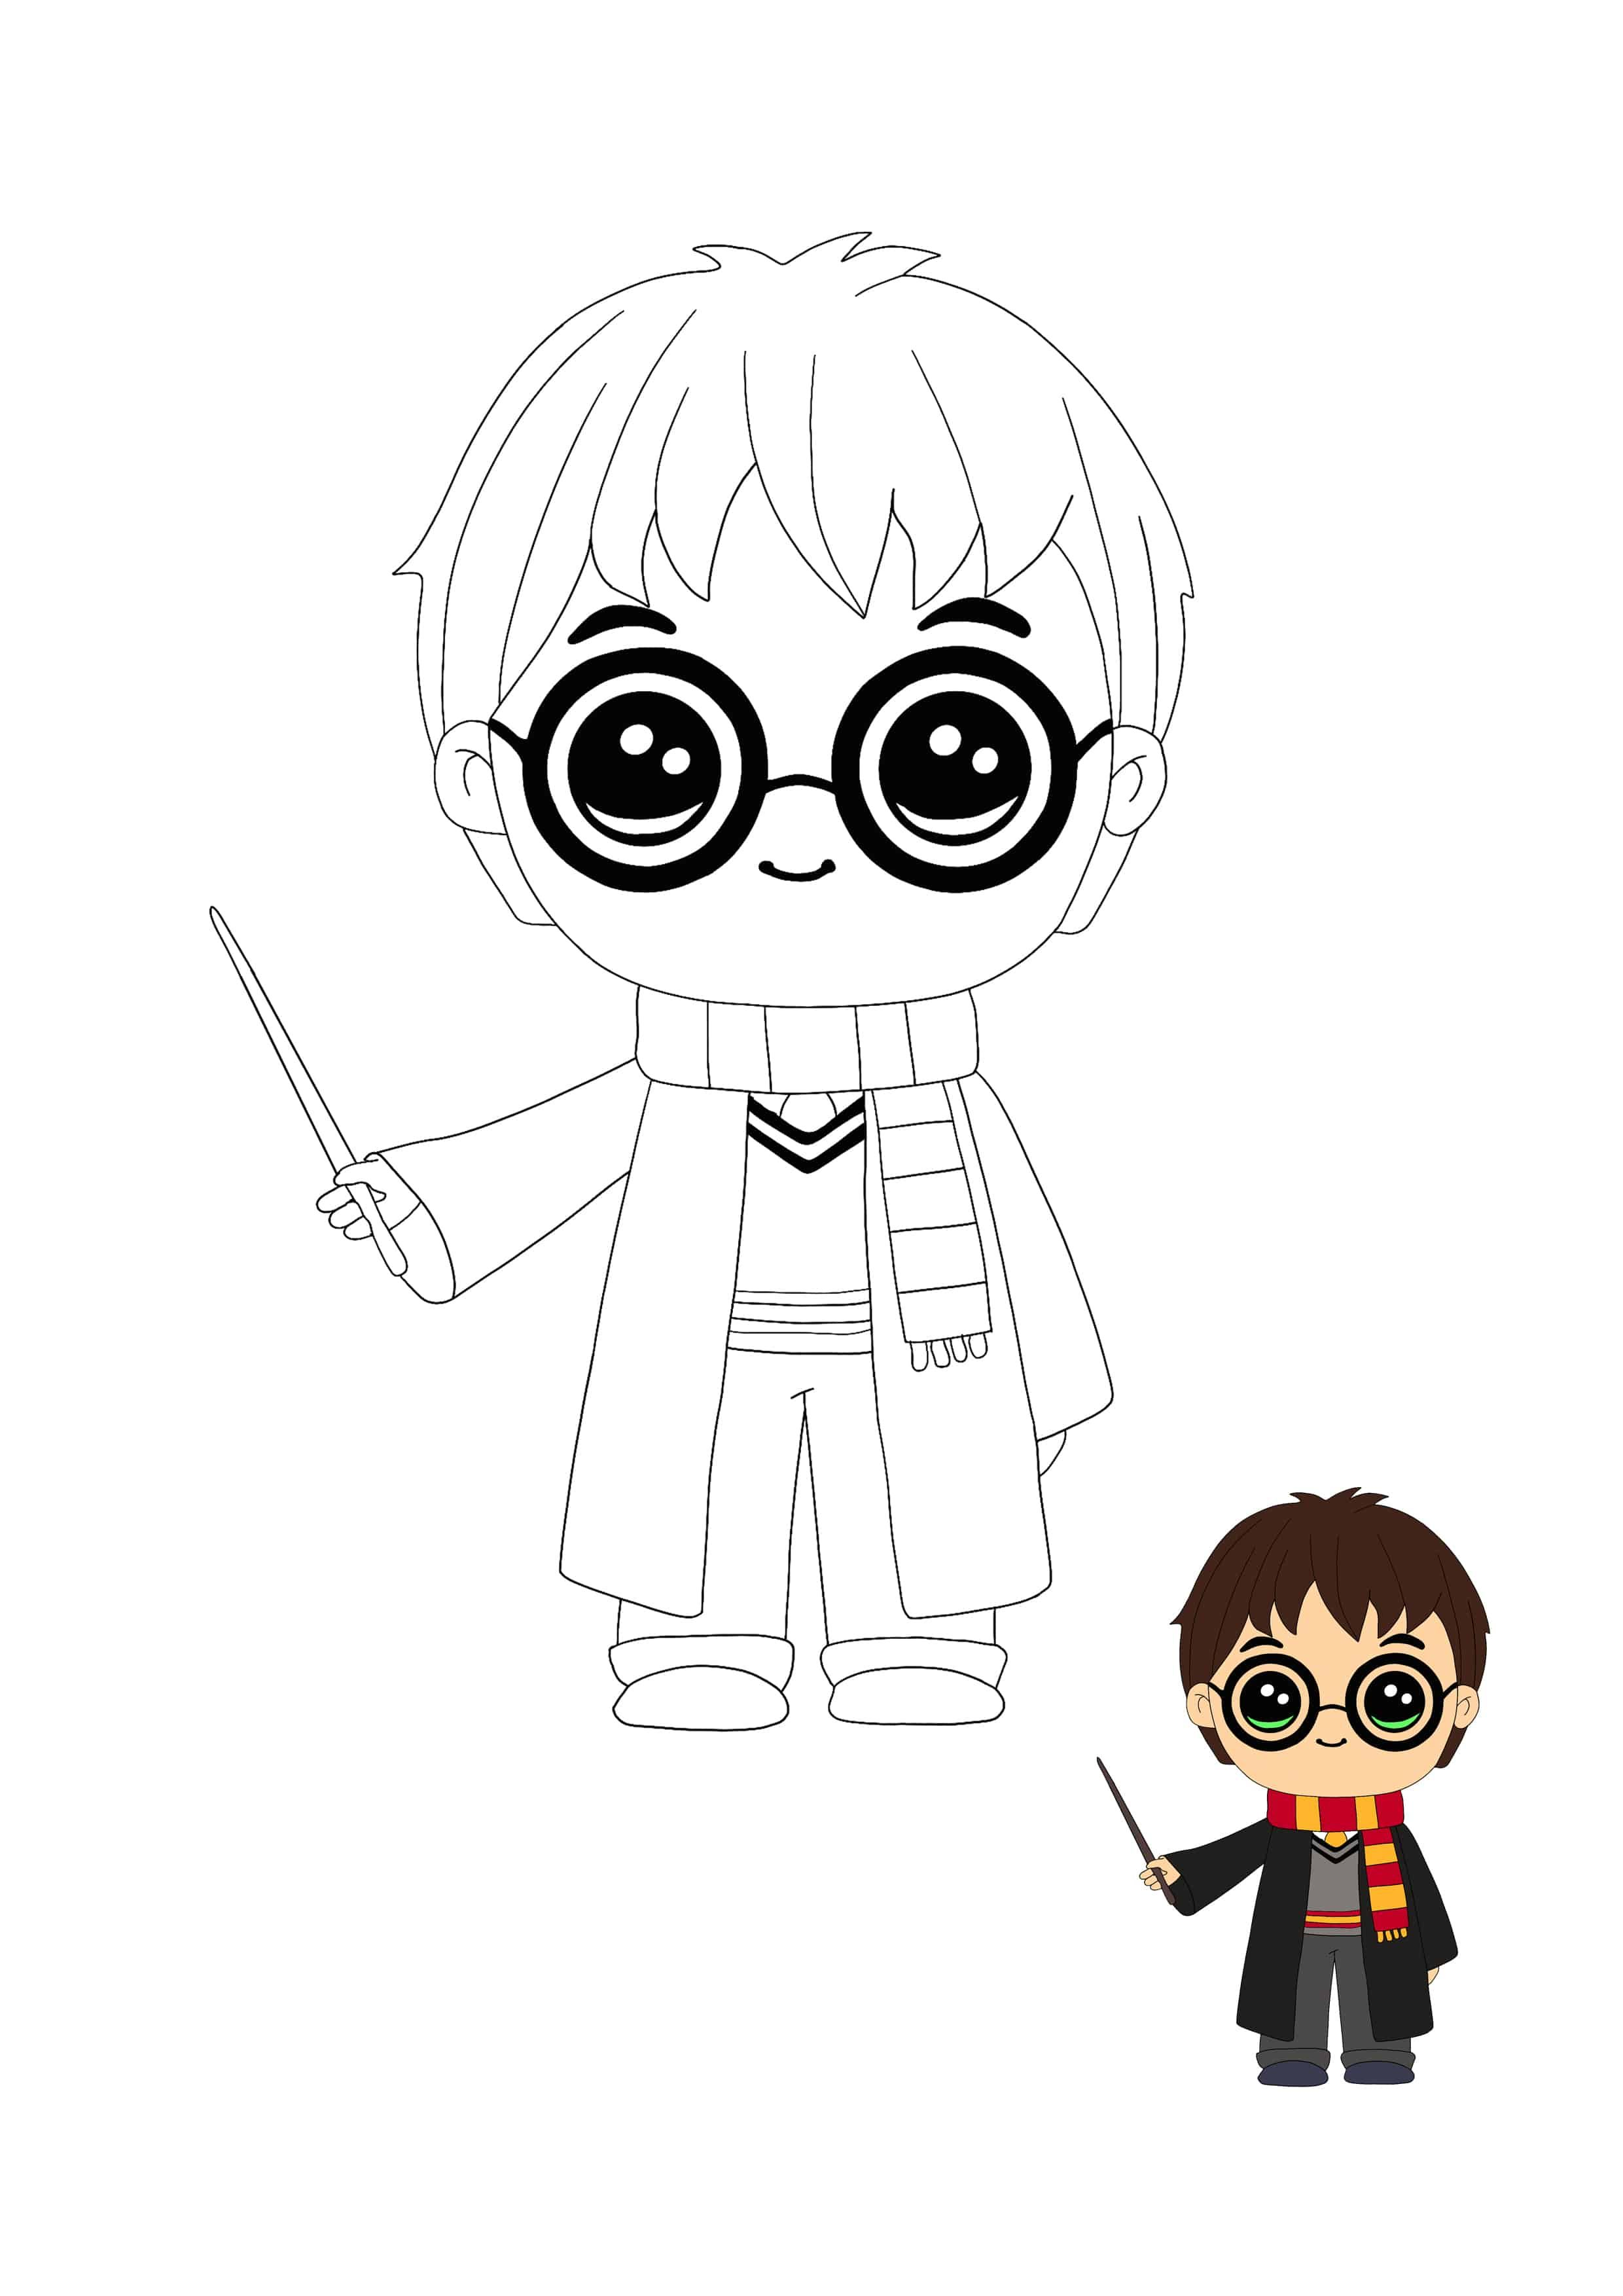 Kawaii Harry Potter Coloring Sheet Harry Potter Coloring Pages Harry Potter Colors Kawaii Coloring Pages